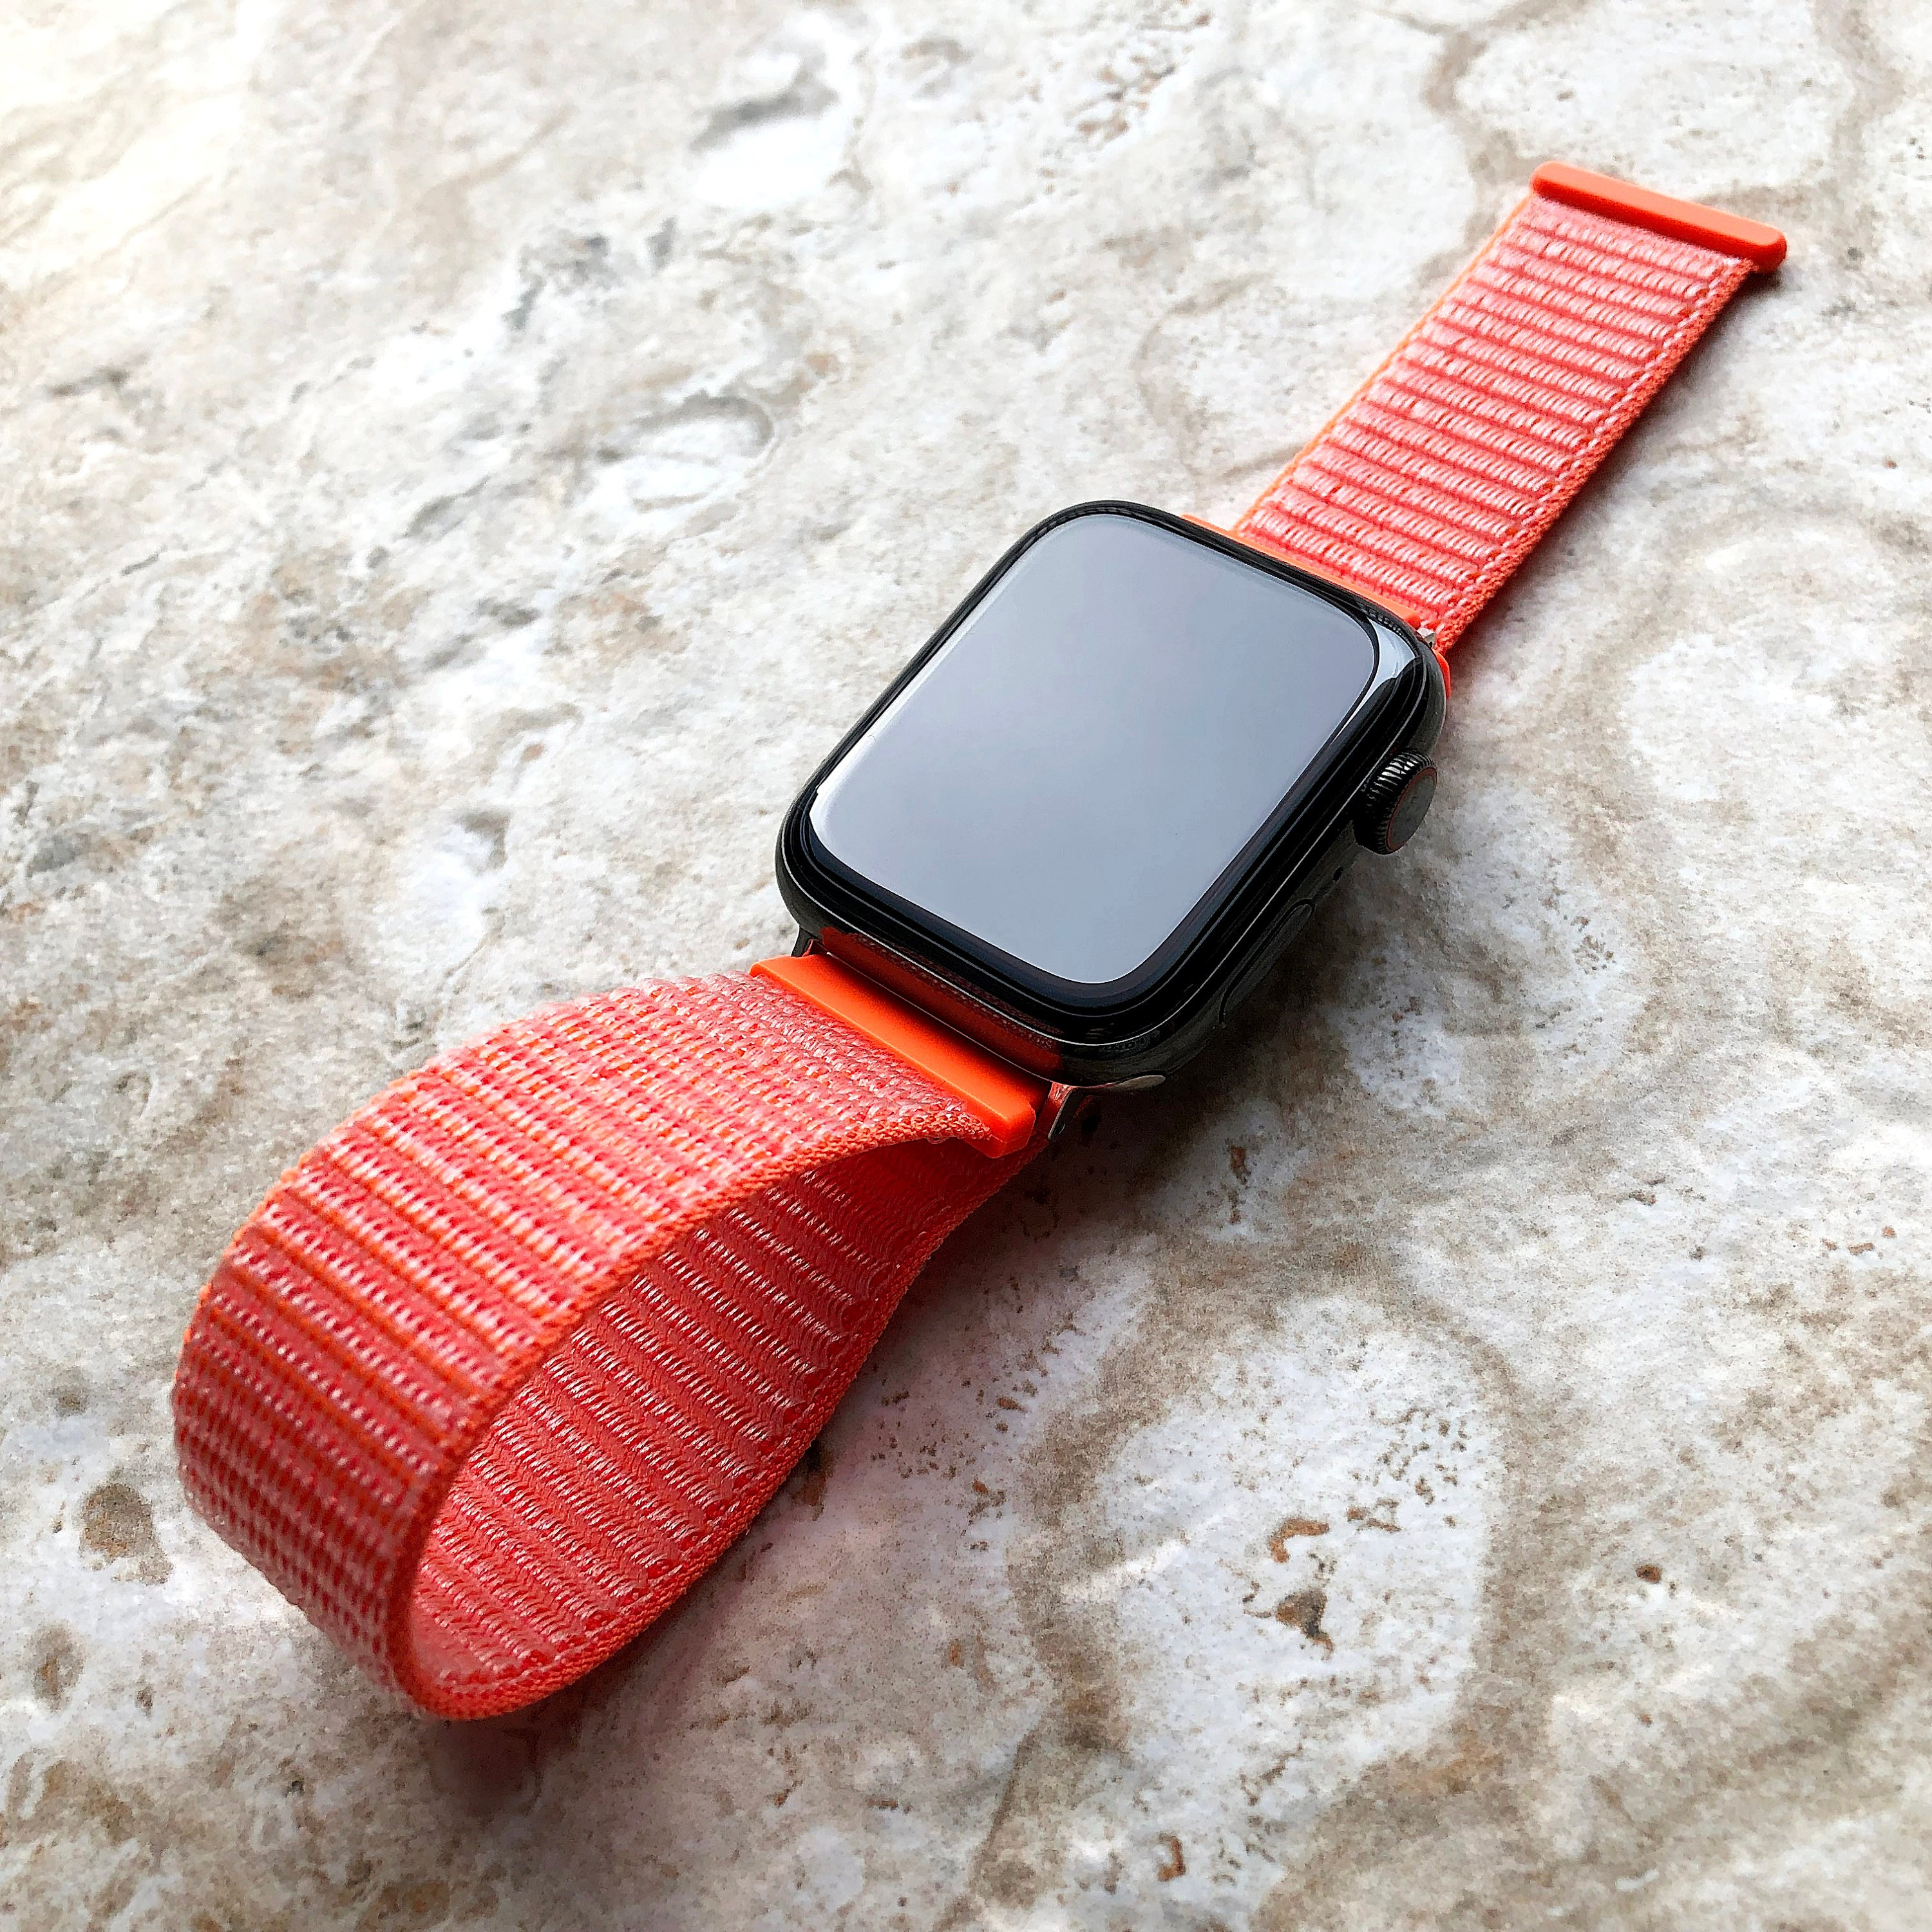 Spicy Orange Loop And Hook Band Strap For Apple Iwatch 38mm 40mm 42mm 44mm Watch 5 4 3 2 1 Series Nike Hermes Silver Black Rose Gold Nickston All Rights Reserved